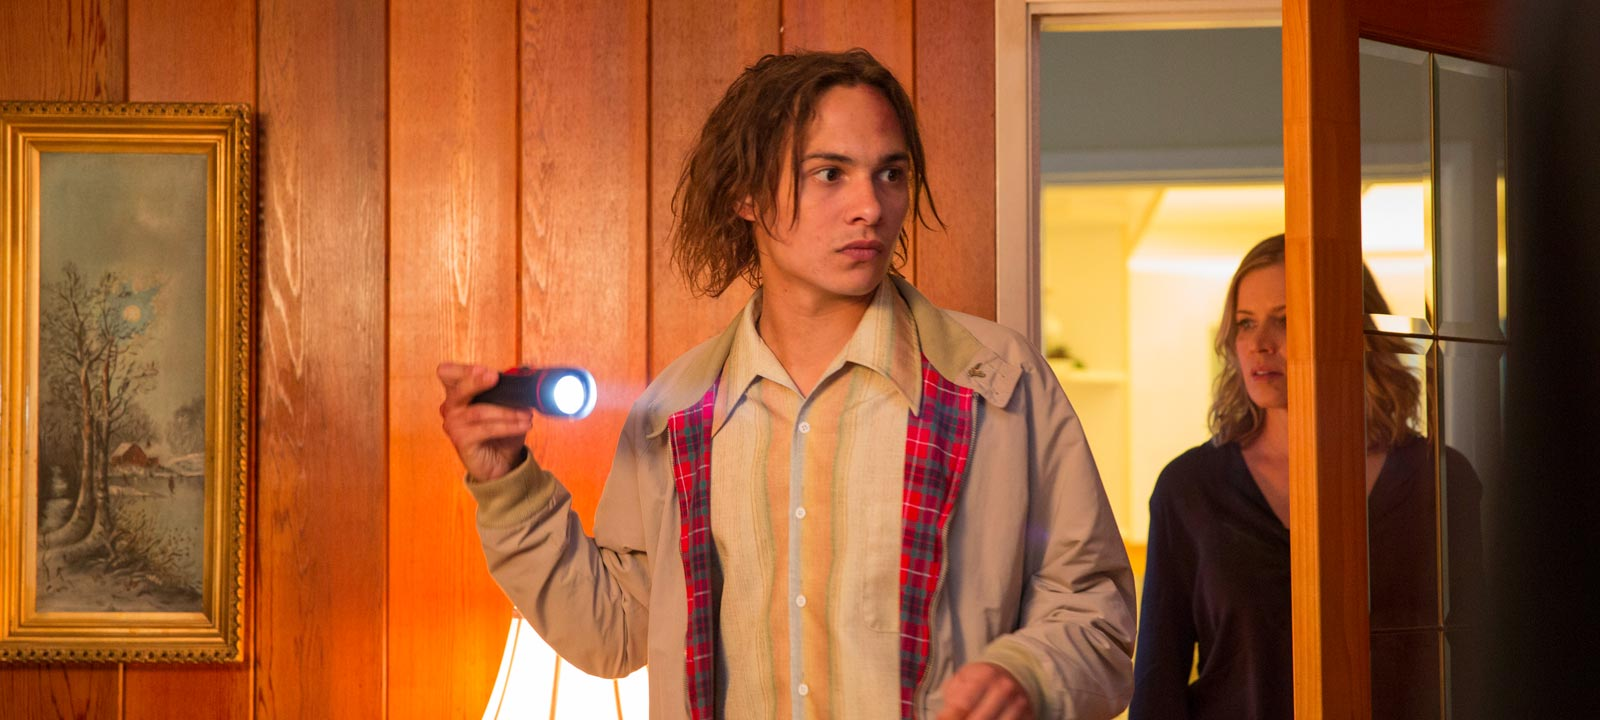 fear-the-walking-dead-episode-103-nick-dillane-interview-800×600